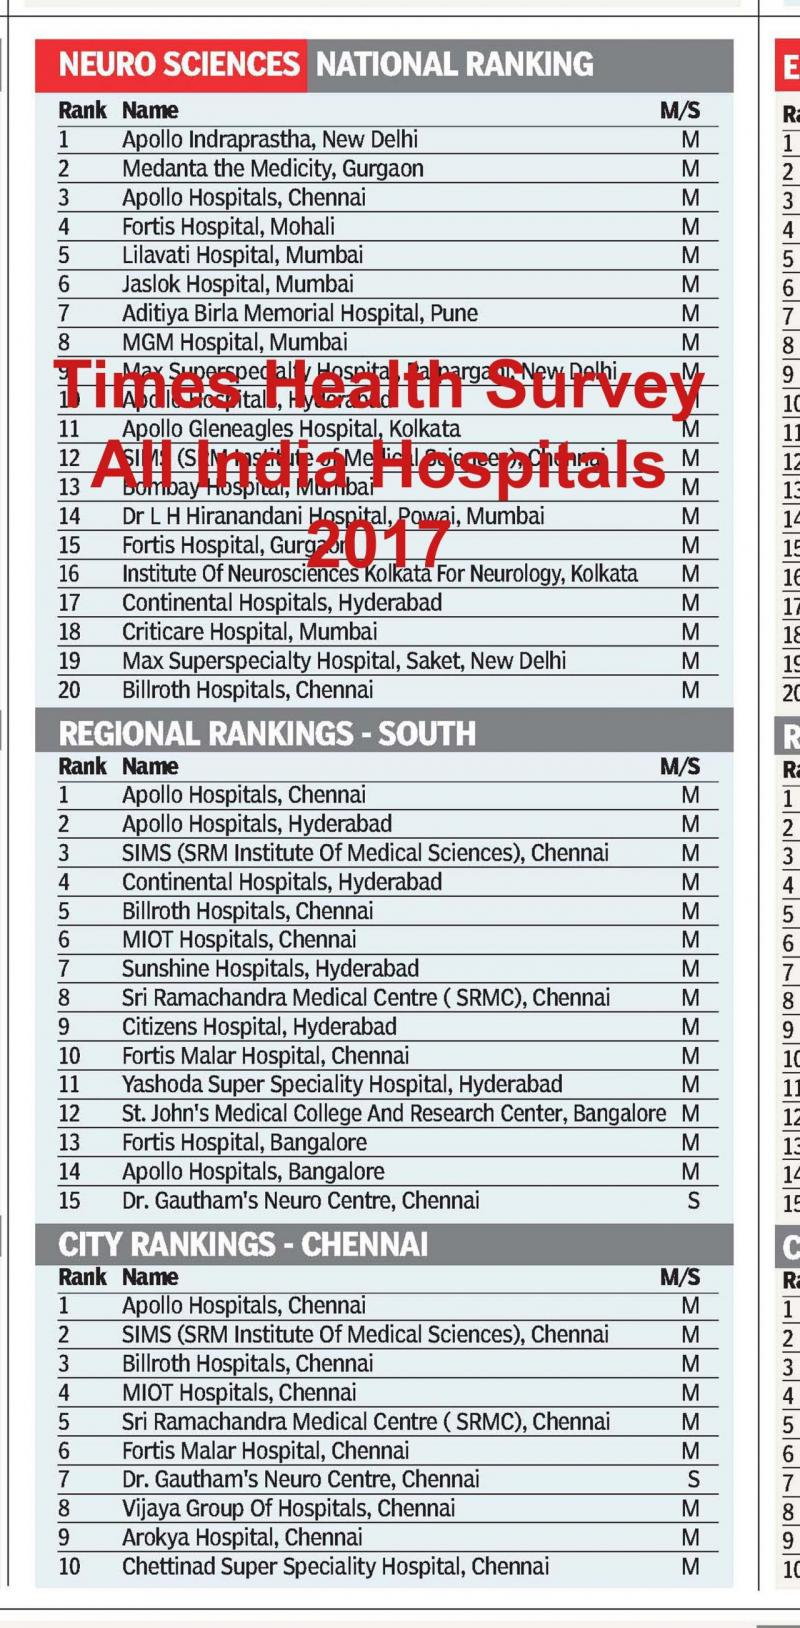 Dog Gautham's Neuro Centre ranked among top hospitals in Indioa